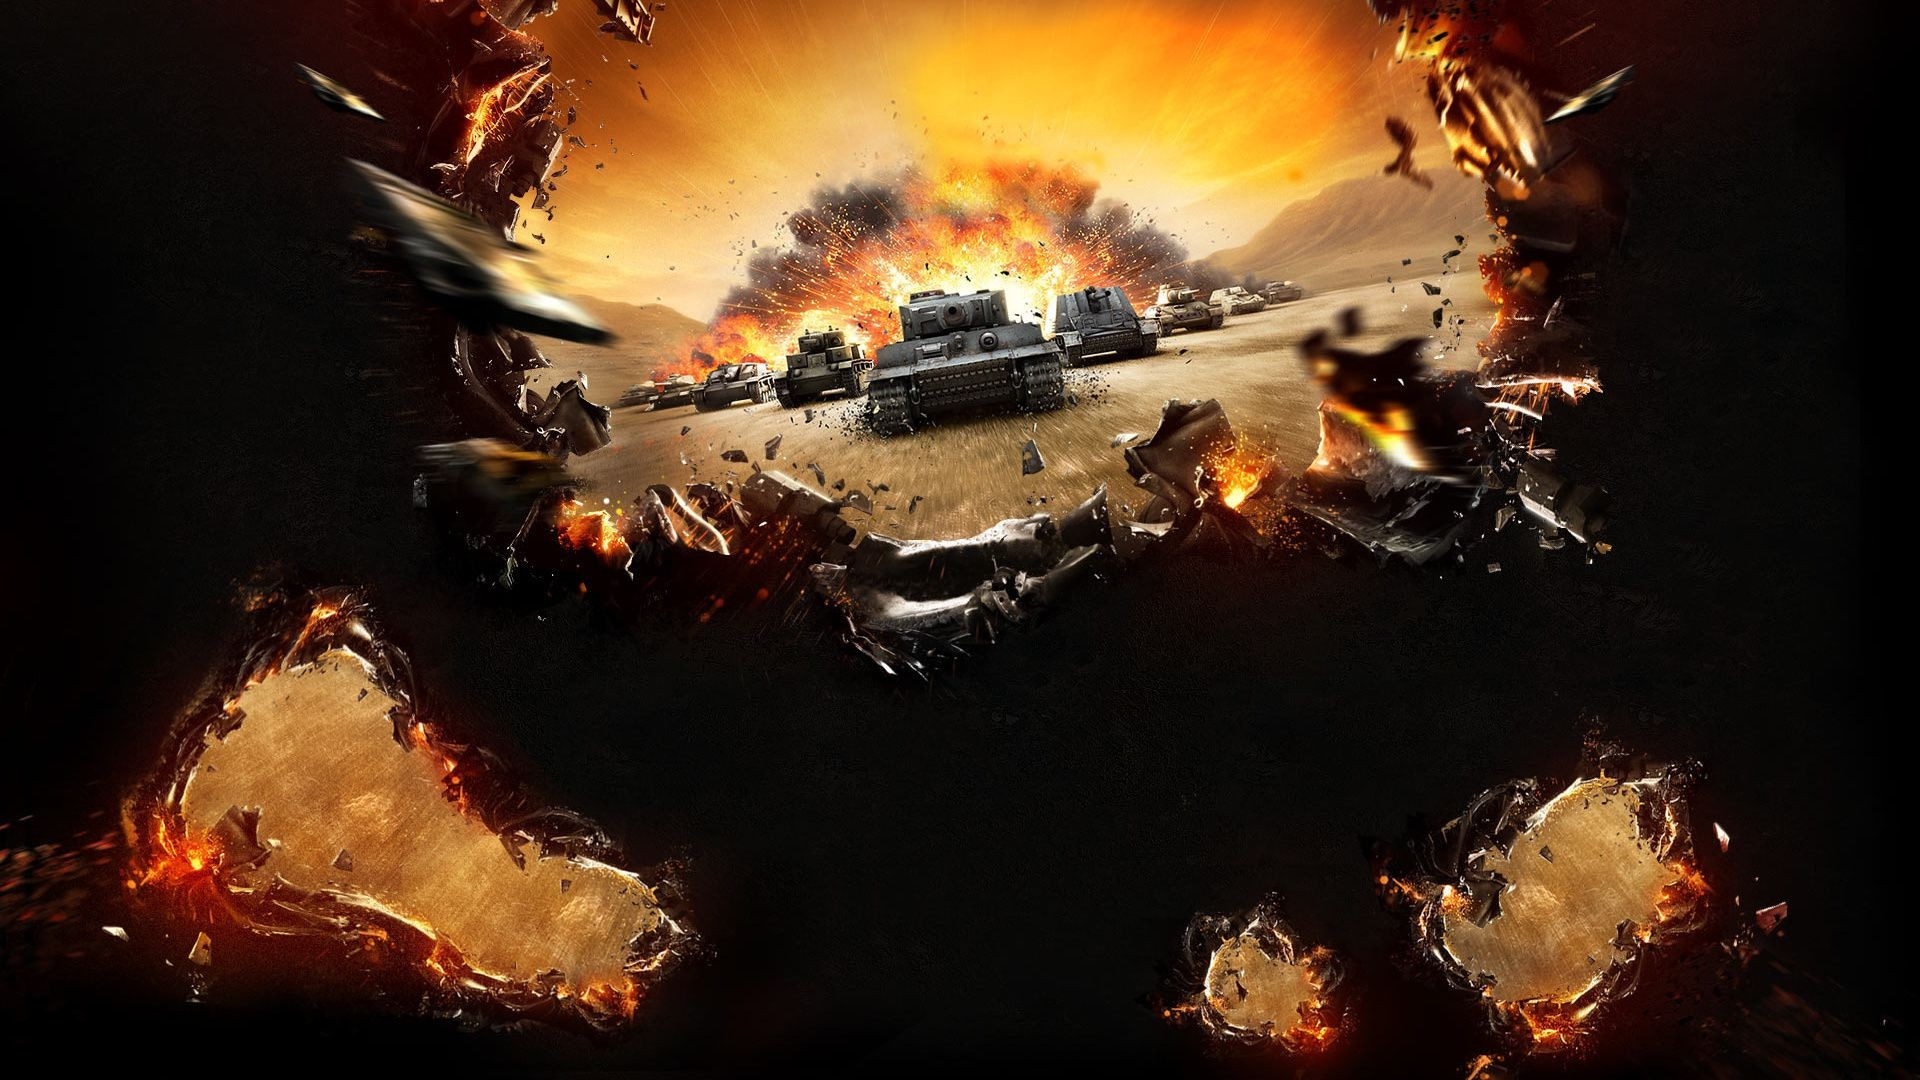 Взрыв и игре world of tanks - скачать обои на ...: million-wallpapers.ru/wallpaper/vzryv-i-igre-world-of-tanks/id/5082